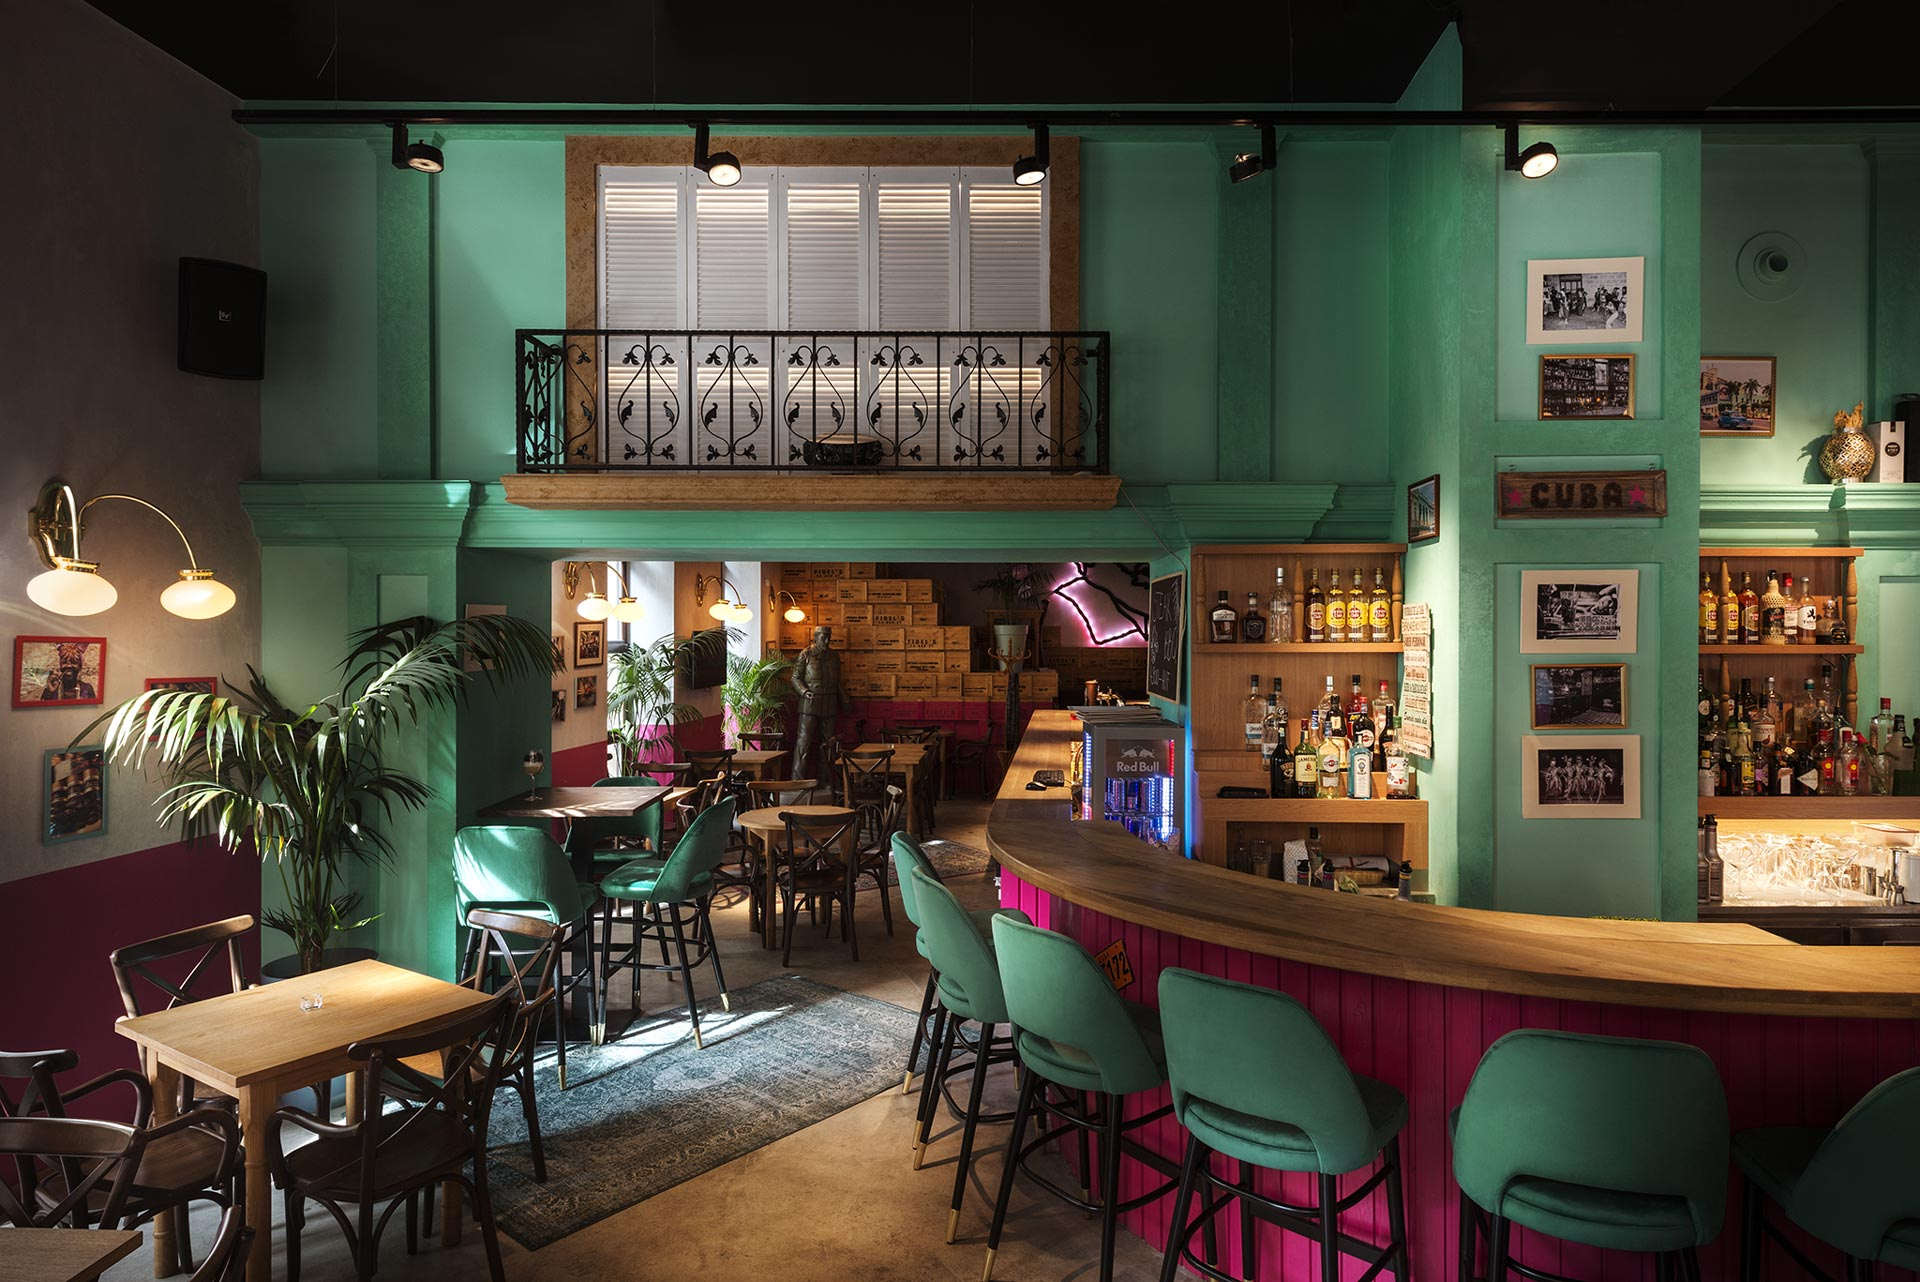 If You Love Cuba, This Cuba Inspired Cabaret is The Place To Go 7